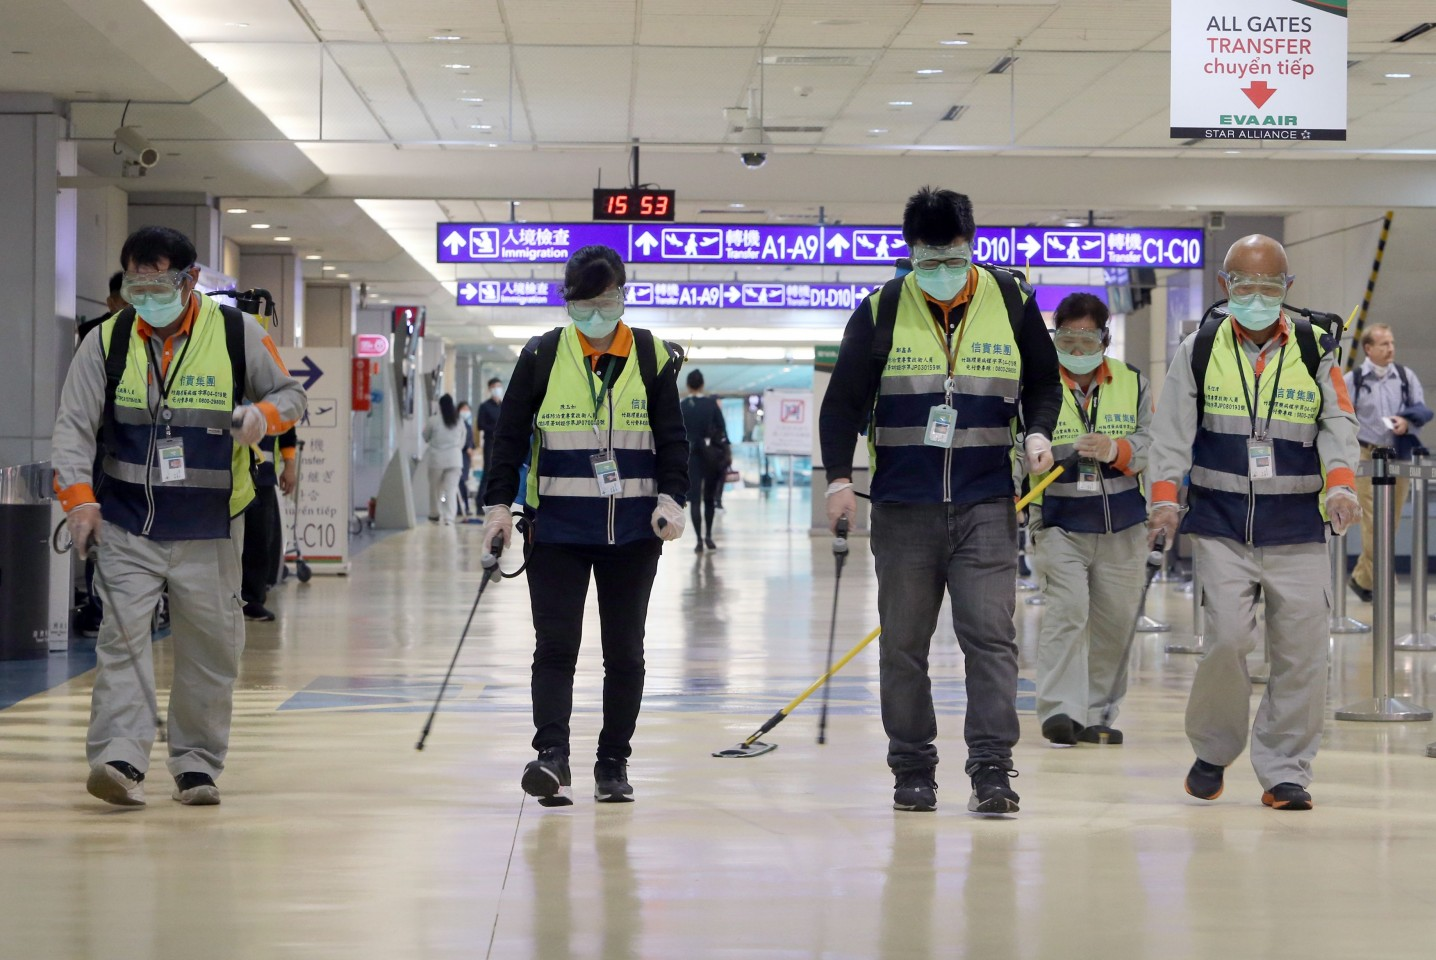 Masked workers disinfect a passenger throughfare at the Taoyuan International Airport on 22 January 2020, after Taiwan reported its first case of the new SARS-like virus from China on 21 Jan. (Chen Chi-chuan/AFP)